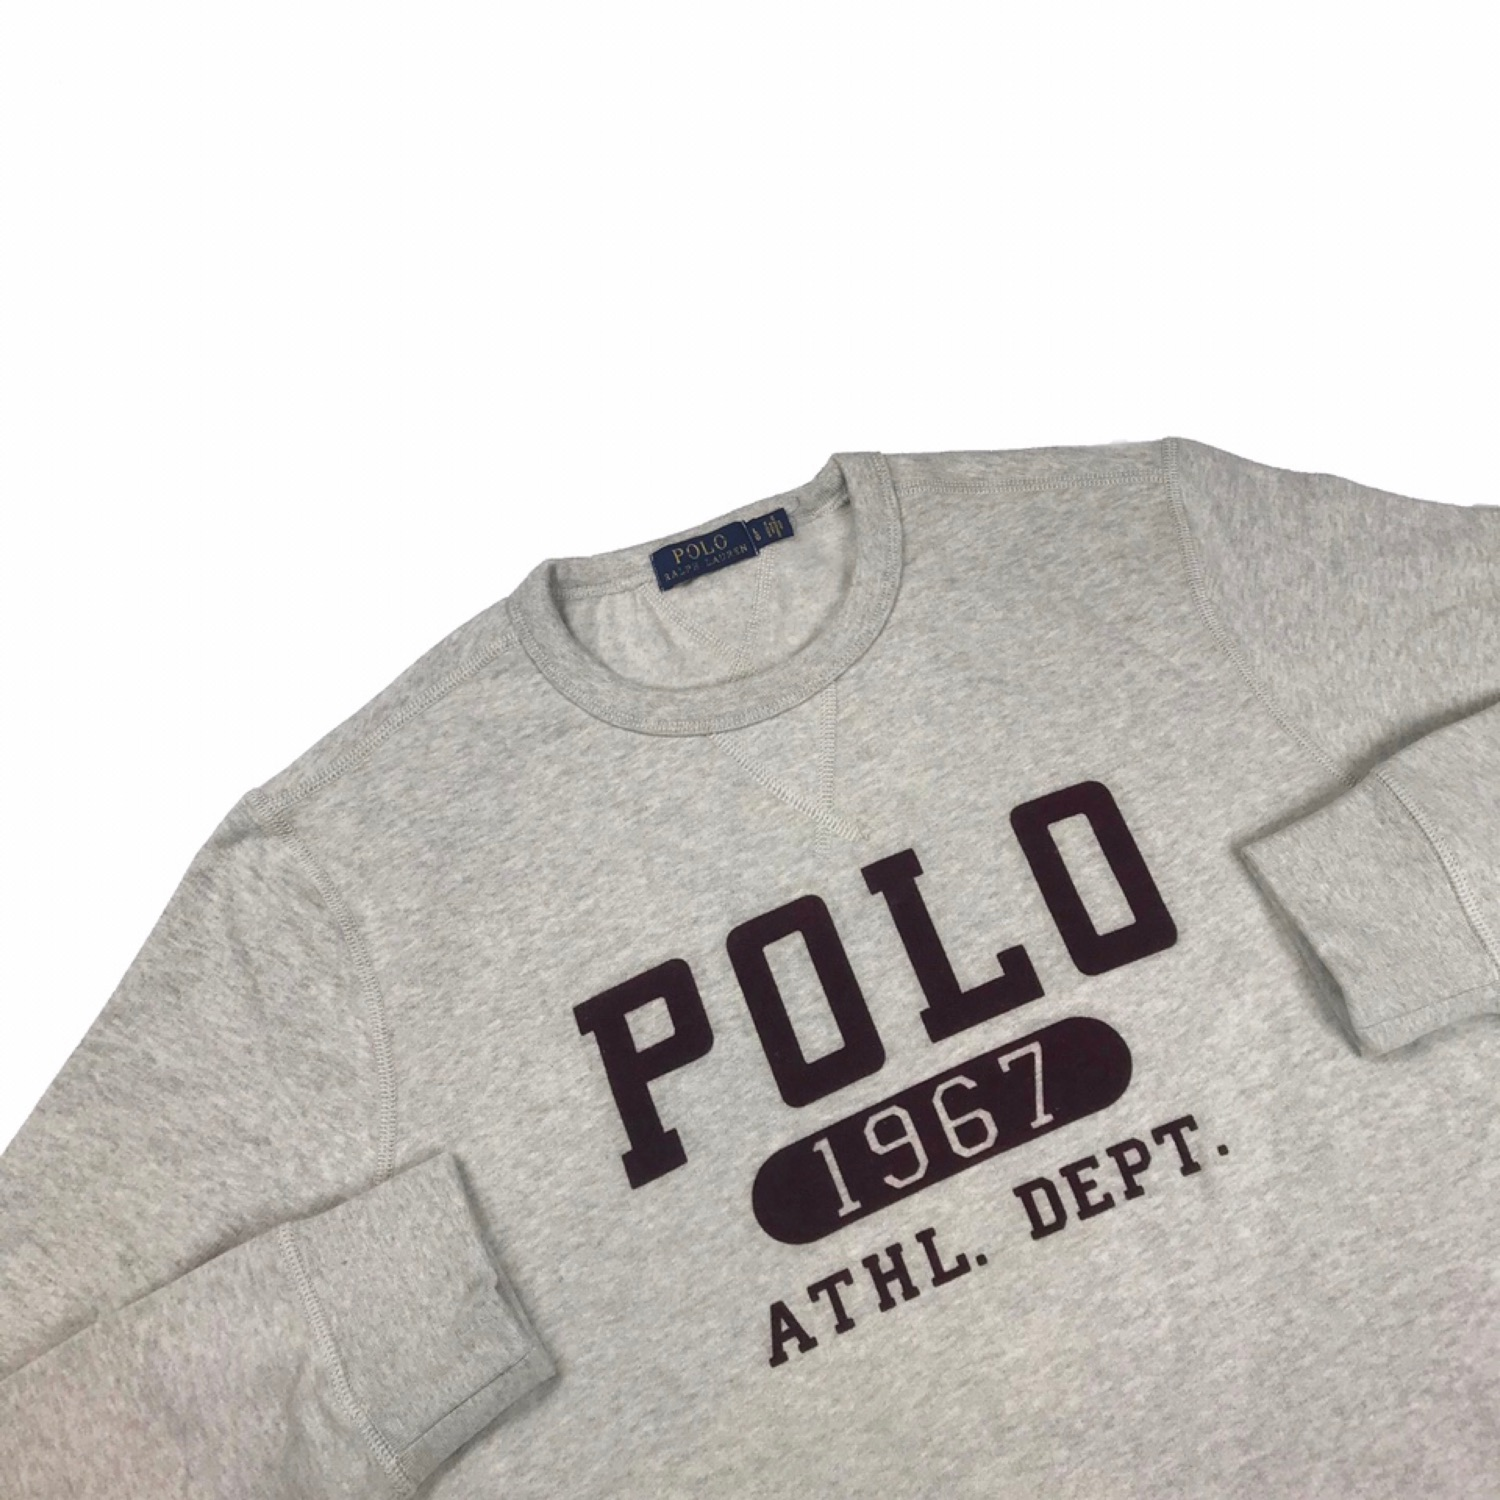 Polo Ralph Lauren Athletic Dept 1967 Crewneck